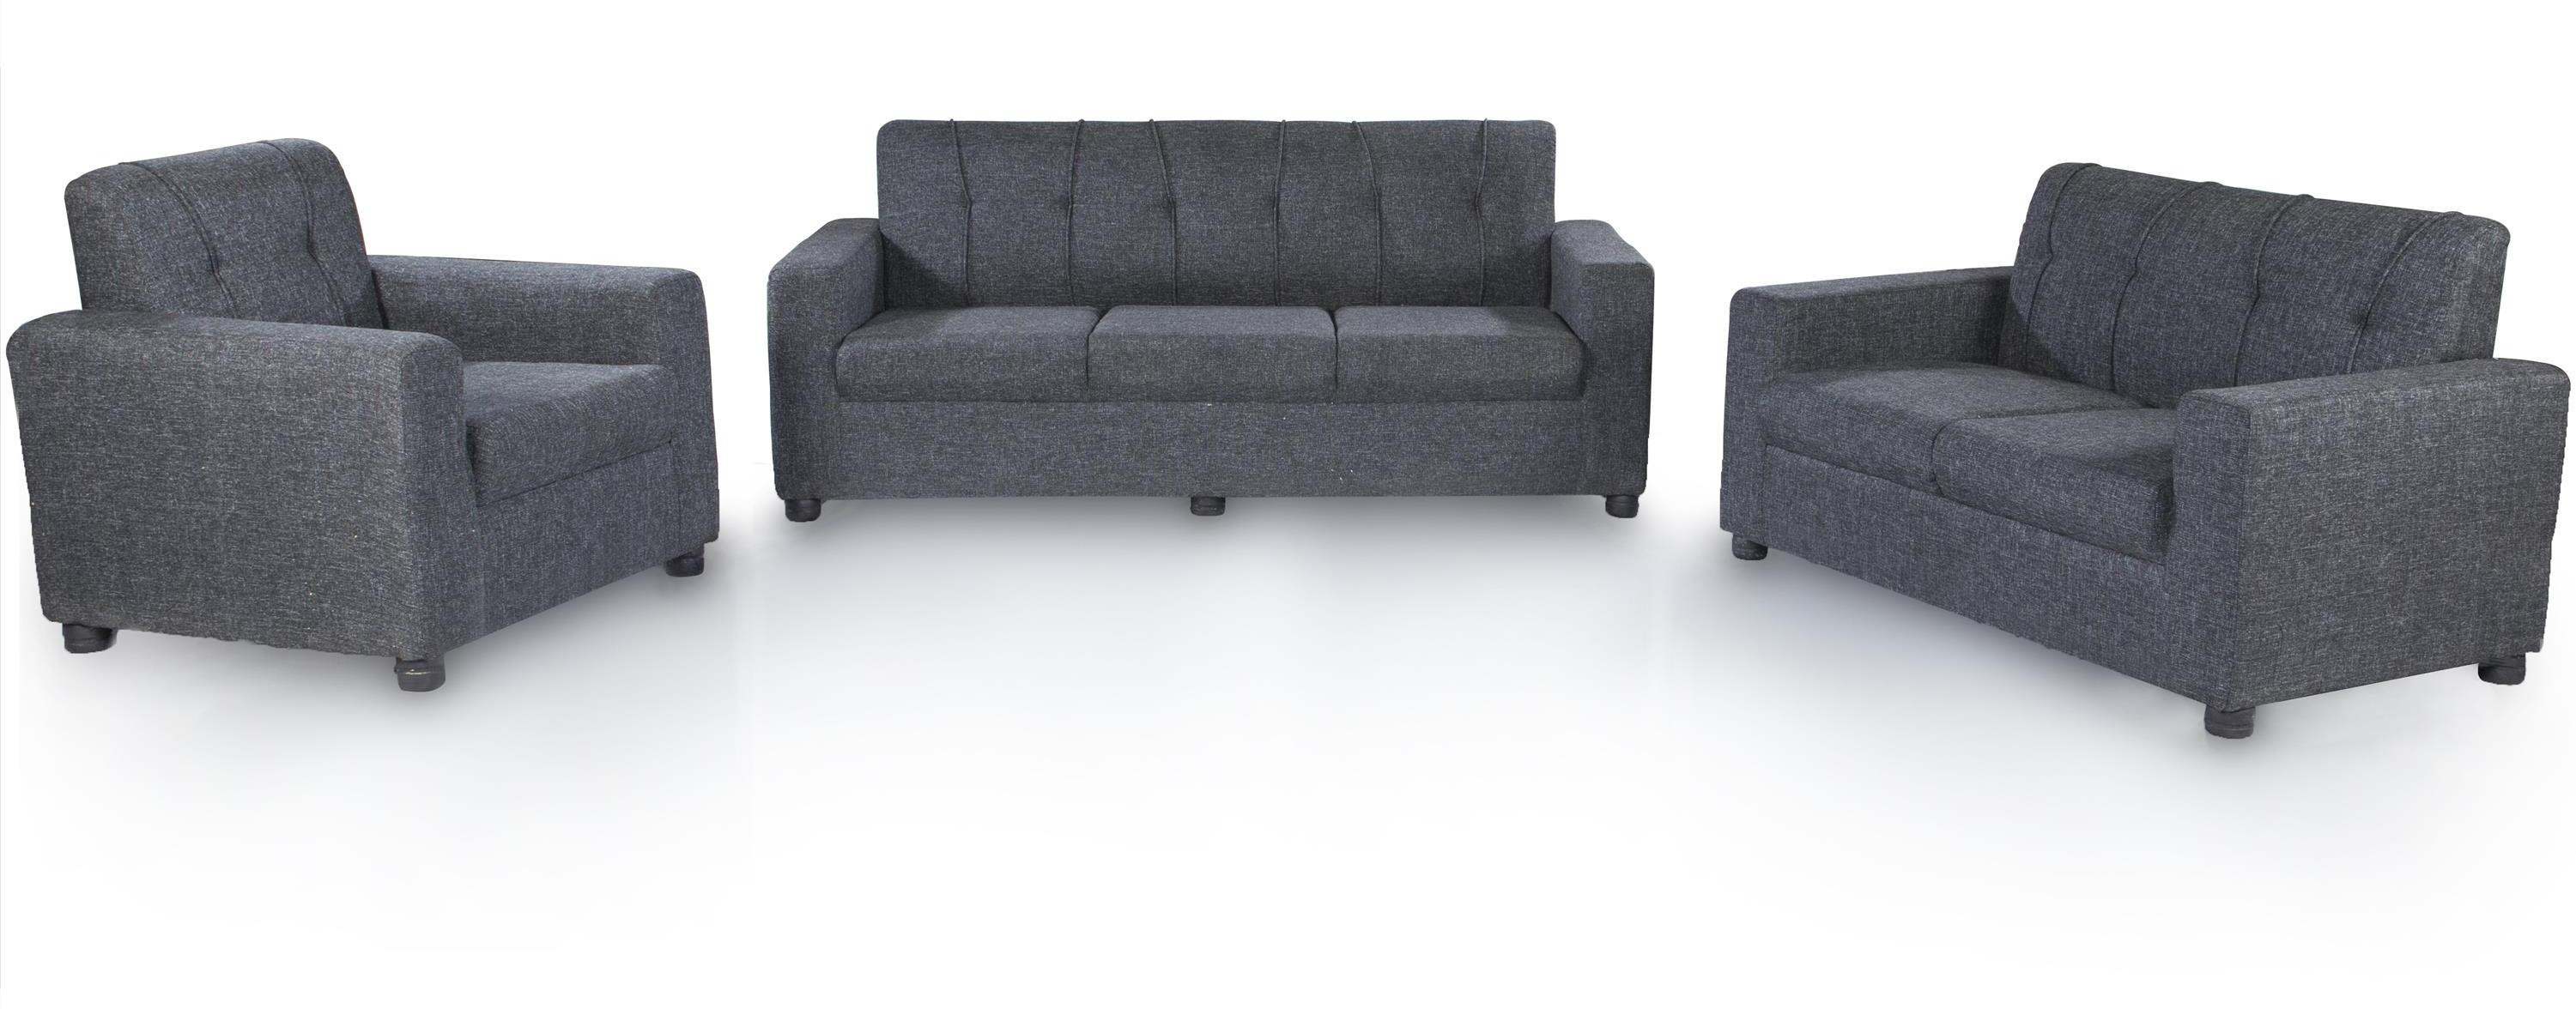 View Furnicity Fabric 3 + 2 + 1 Grey Sofa Set(Configuration - Straight) Furniture (Furnicity)